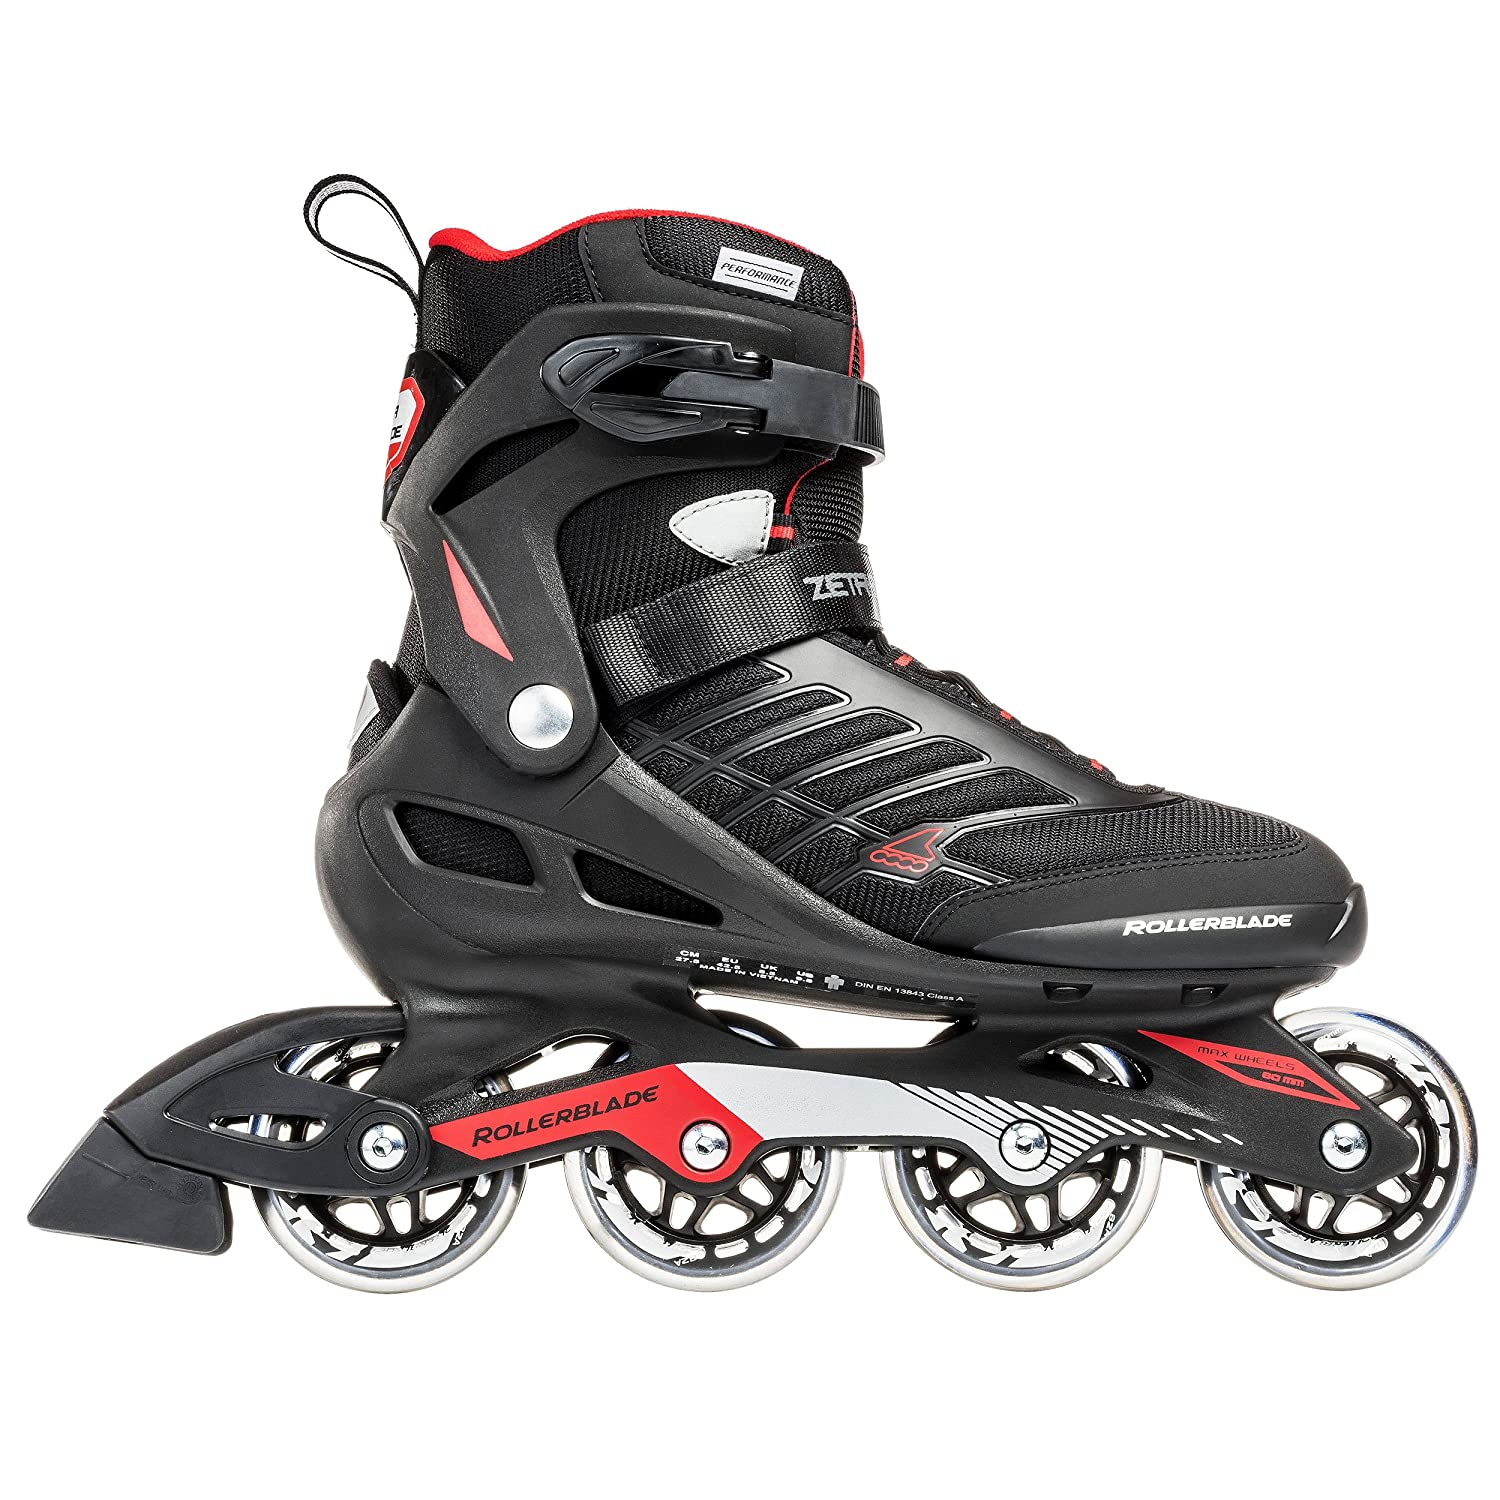 Roller skating shoes price in pakistan - Roller Skating Shoes Price In Pakistan 33